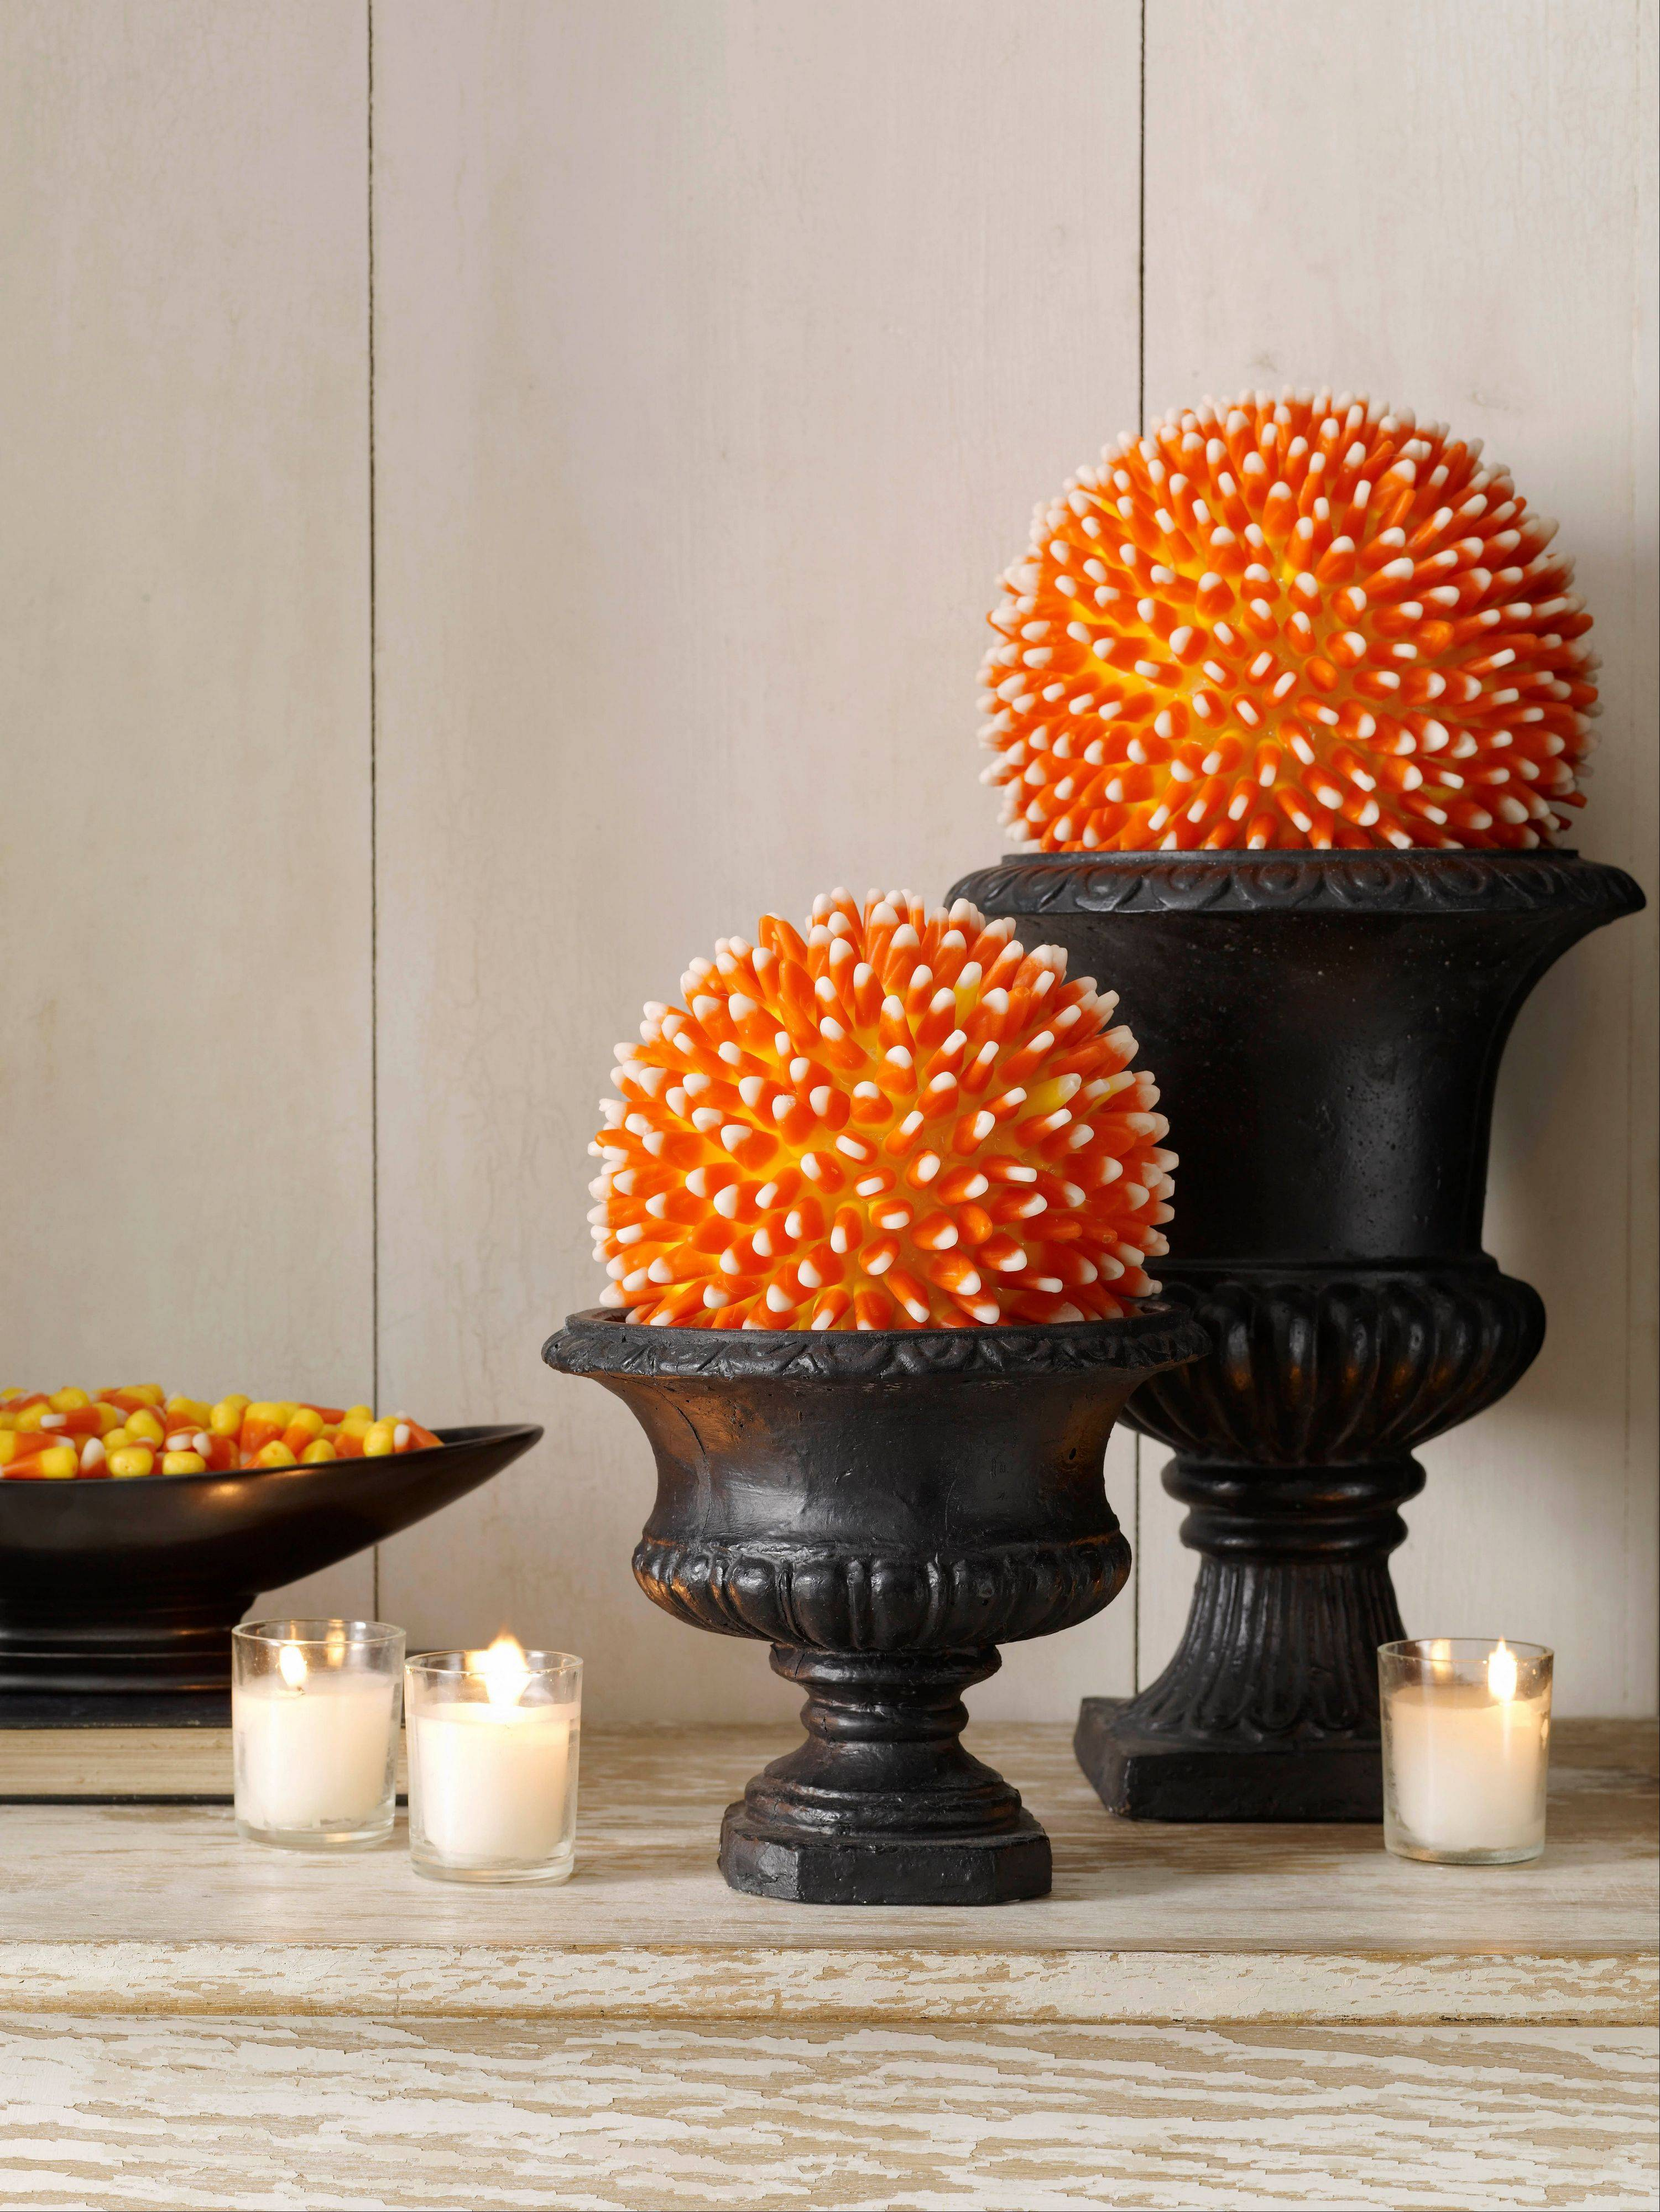 Create this candy corn centerpiece with a hot glue gun and a bag of candy corn along with a Styrofoam ball or cone shape. Instructions are available at womansday.com.